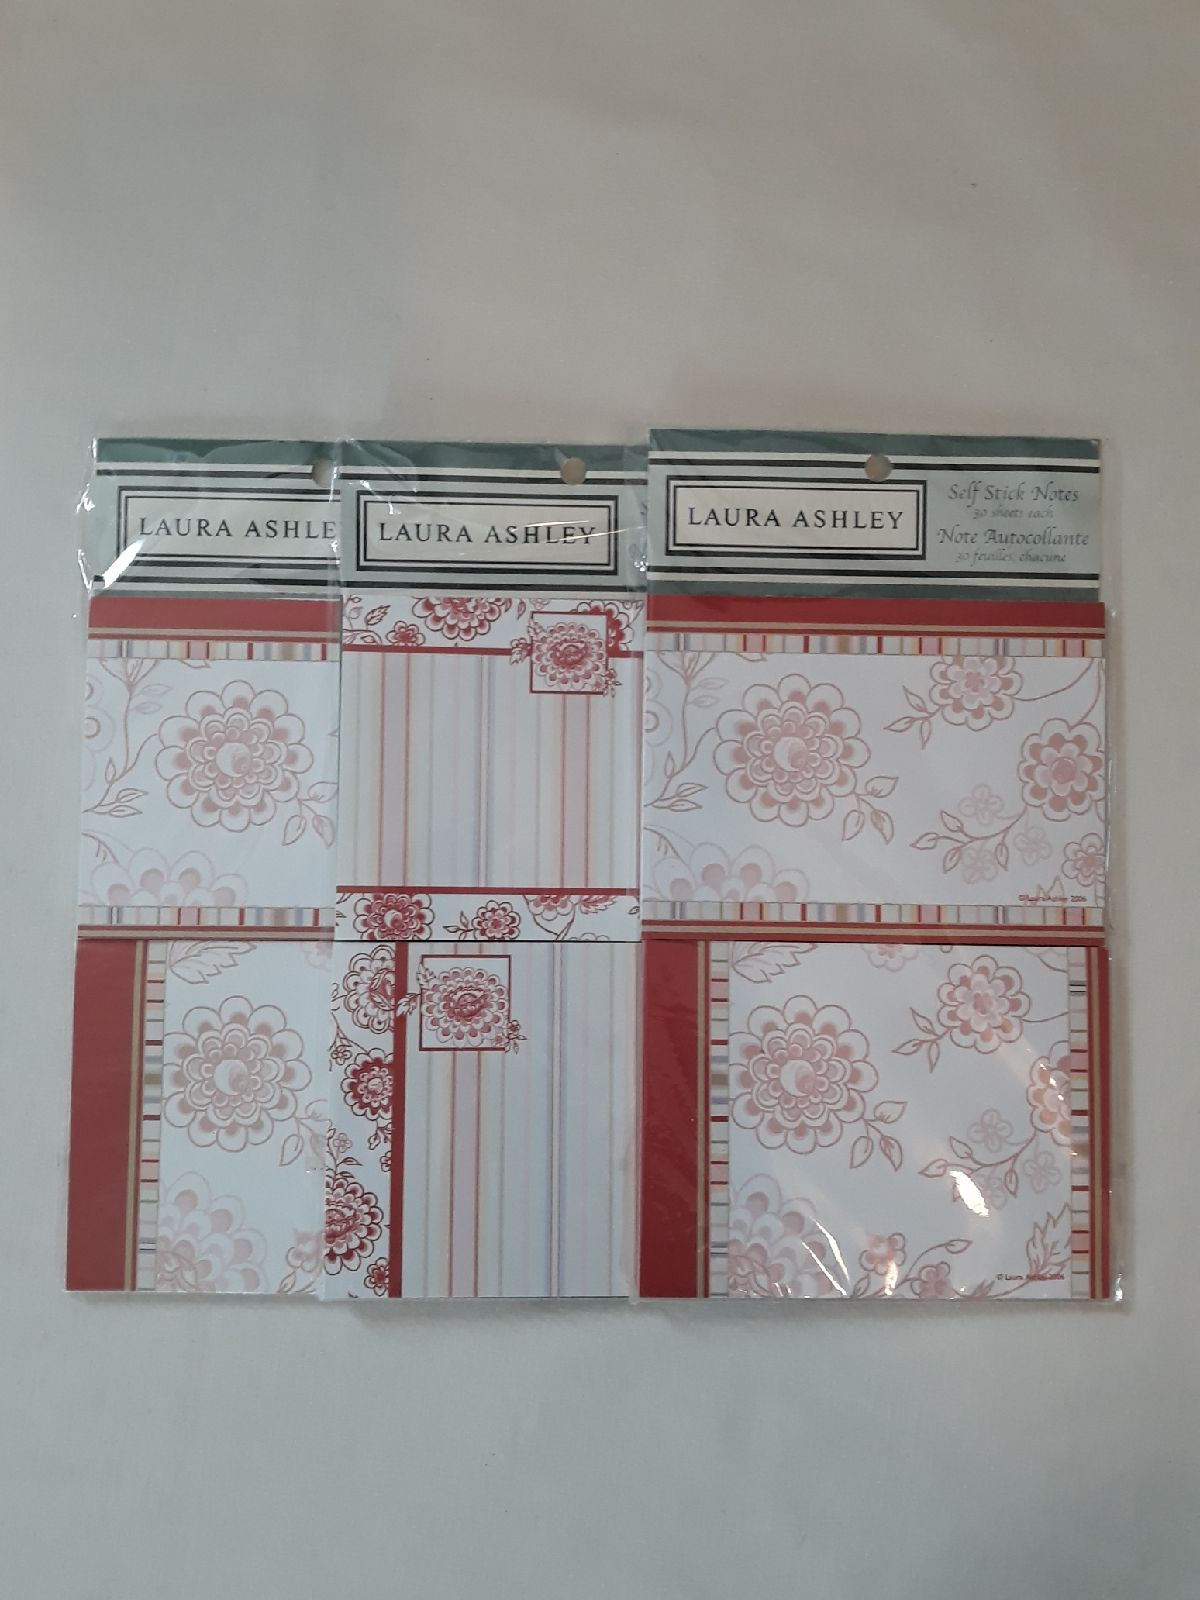 Three new, sealed packages of Laura Ashley Self Stick Notes from her 2006 stationery collection.  Each package has two note pads and each note pad has 30 sticky notes for 180 total sheets.    I am happy to combine shipping when possible on any of my items!